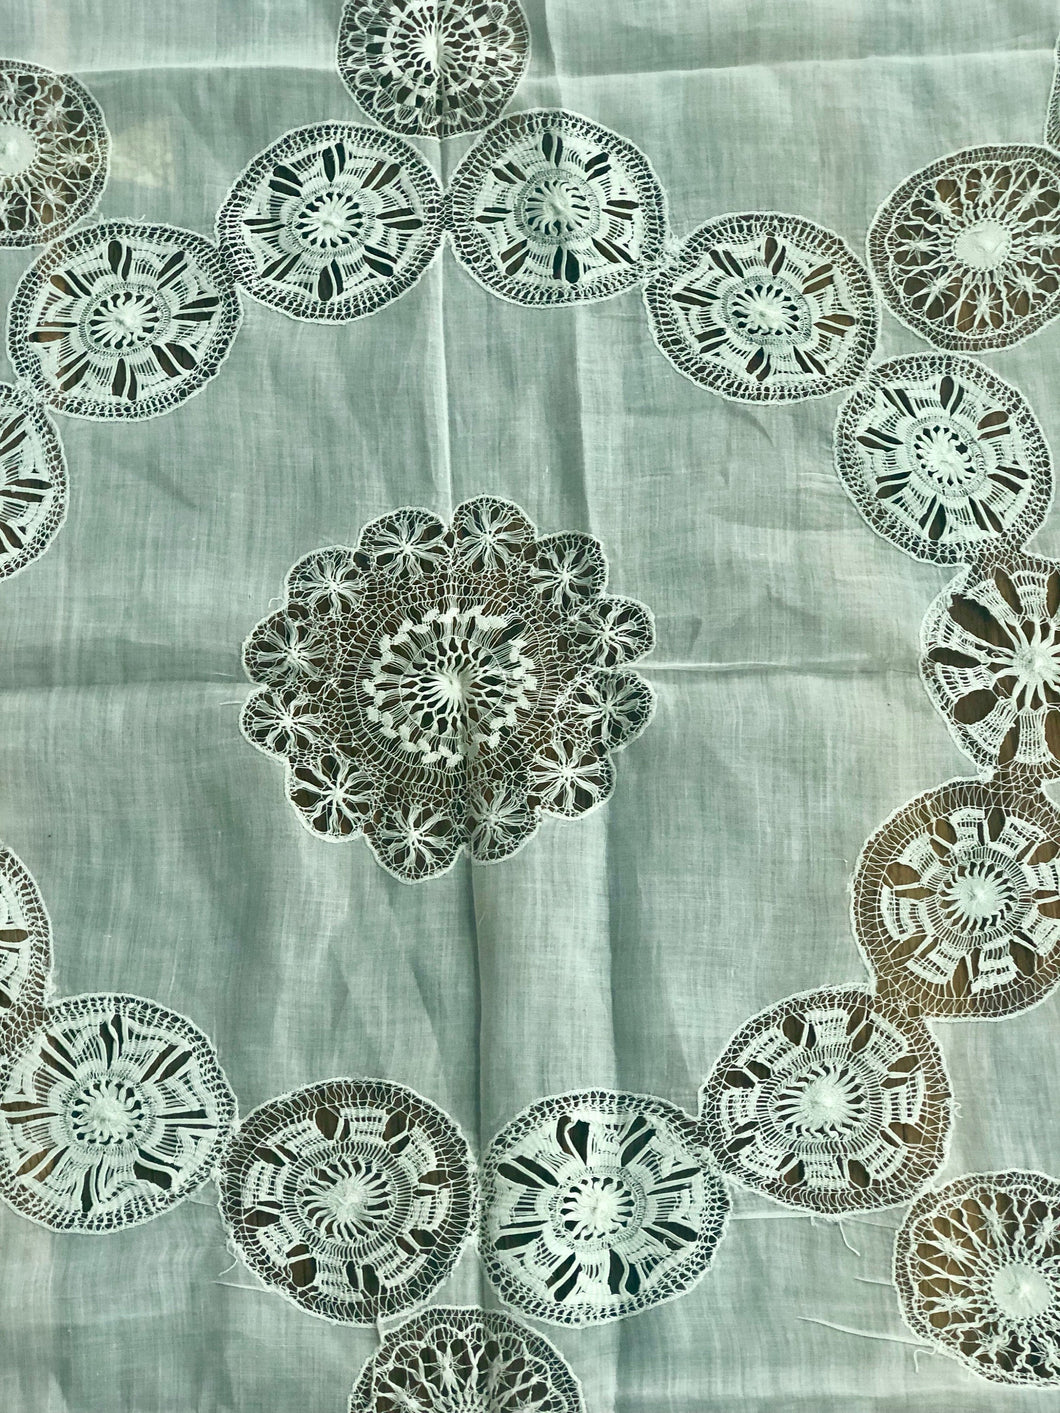 Antique Tablecloth - 1900- Small Tablecloth - LuluBoopVintage